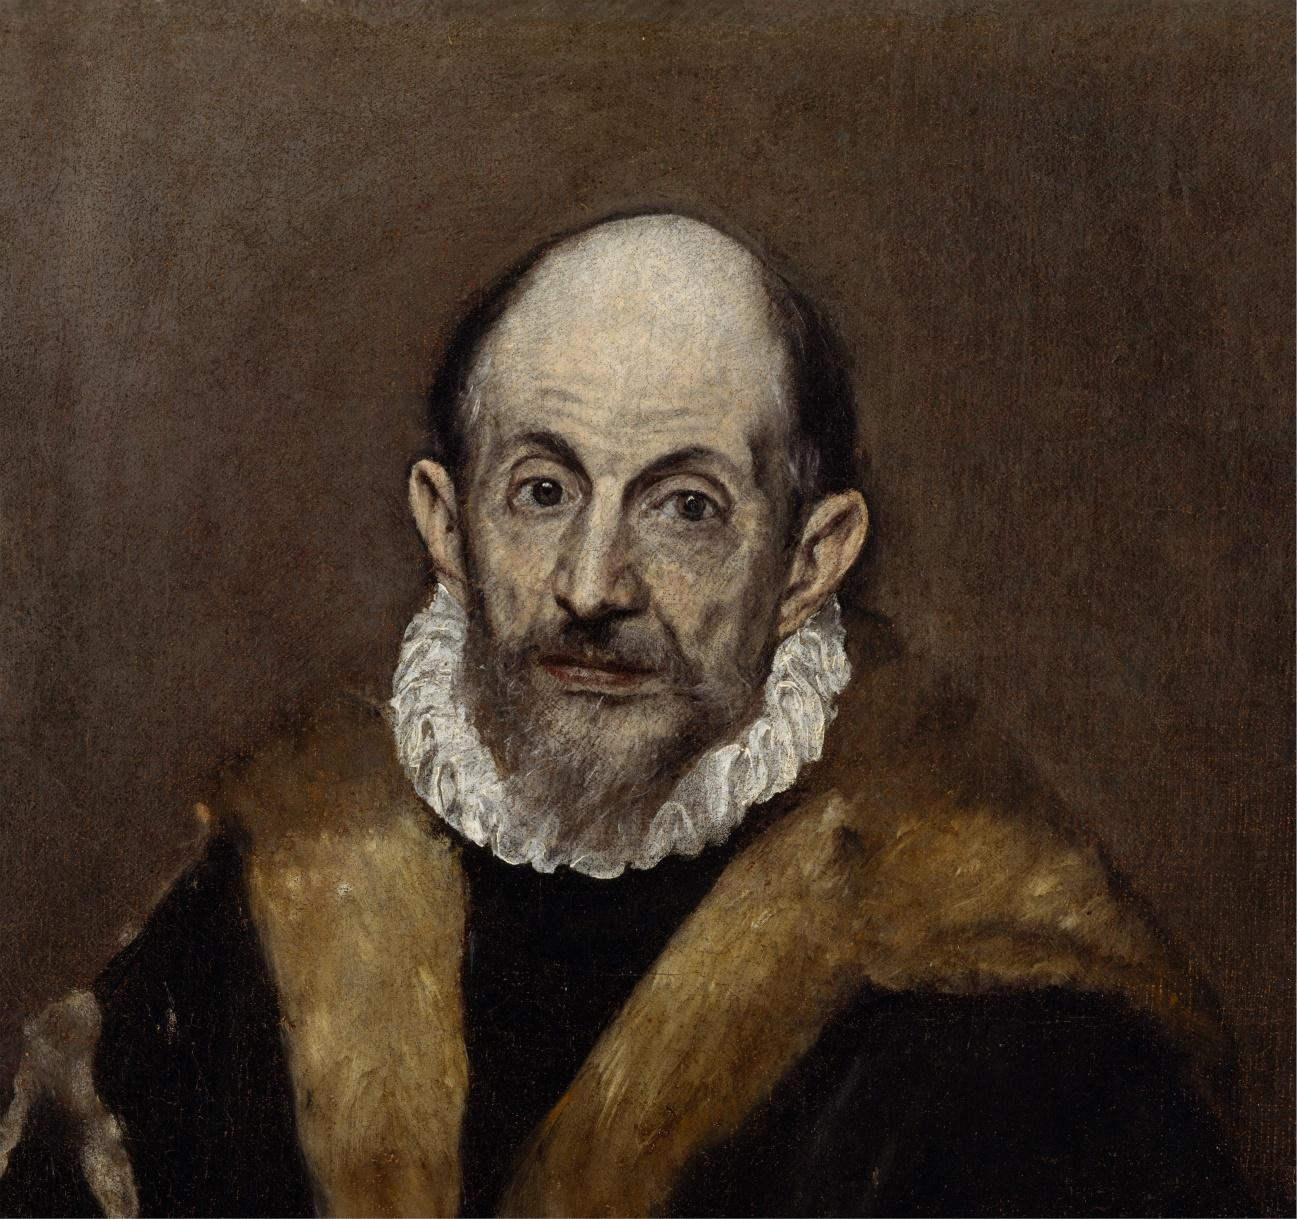 C:\Users\Usuario\Desktop\eric\el greco.jpg